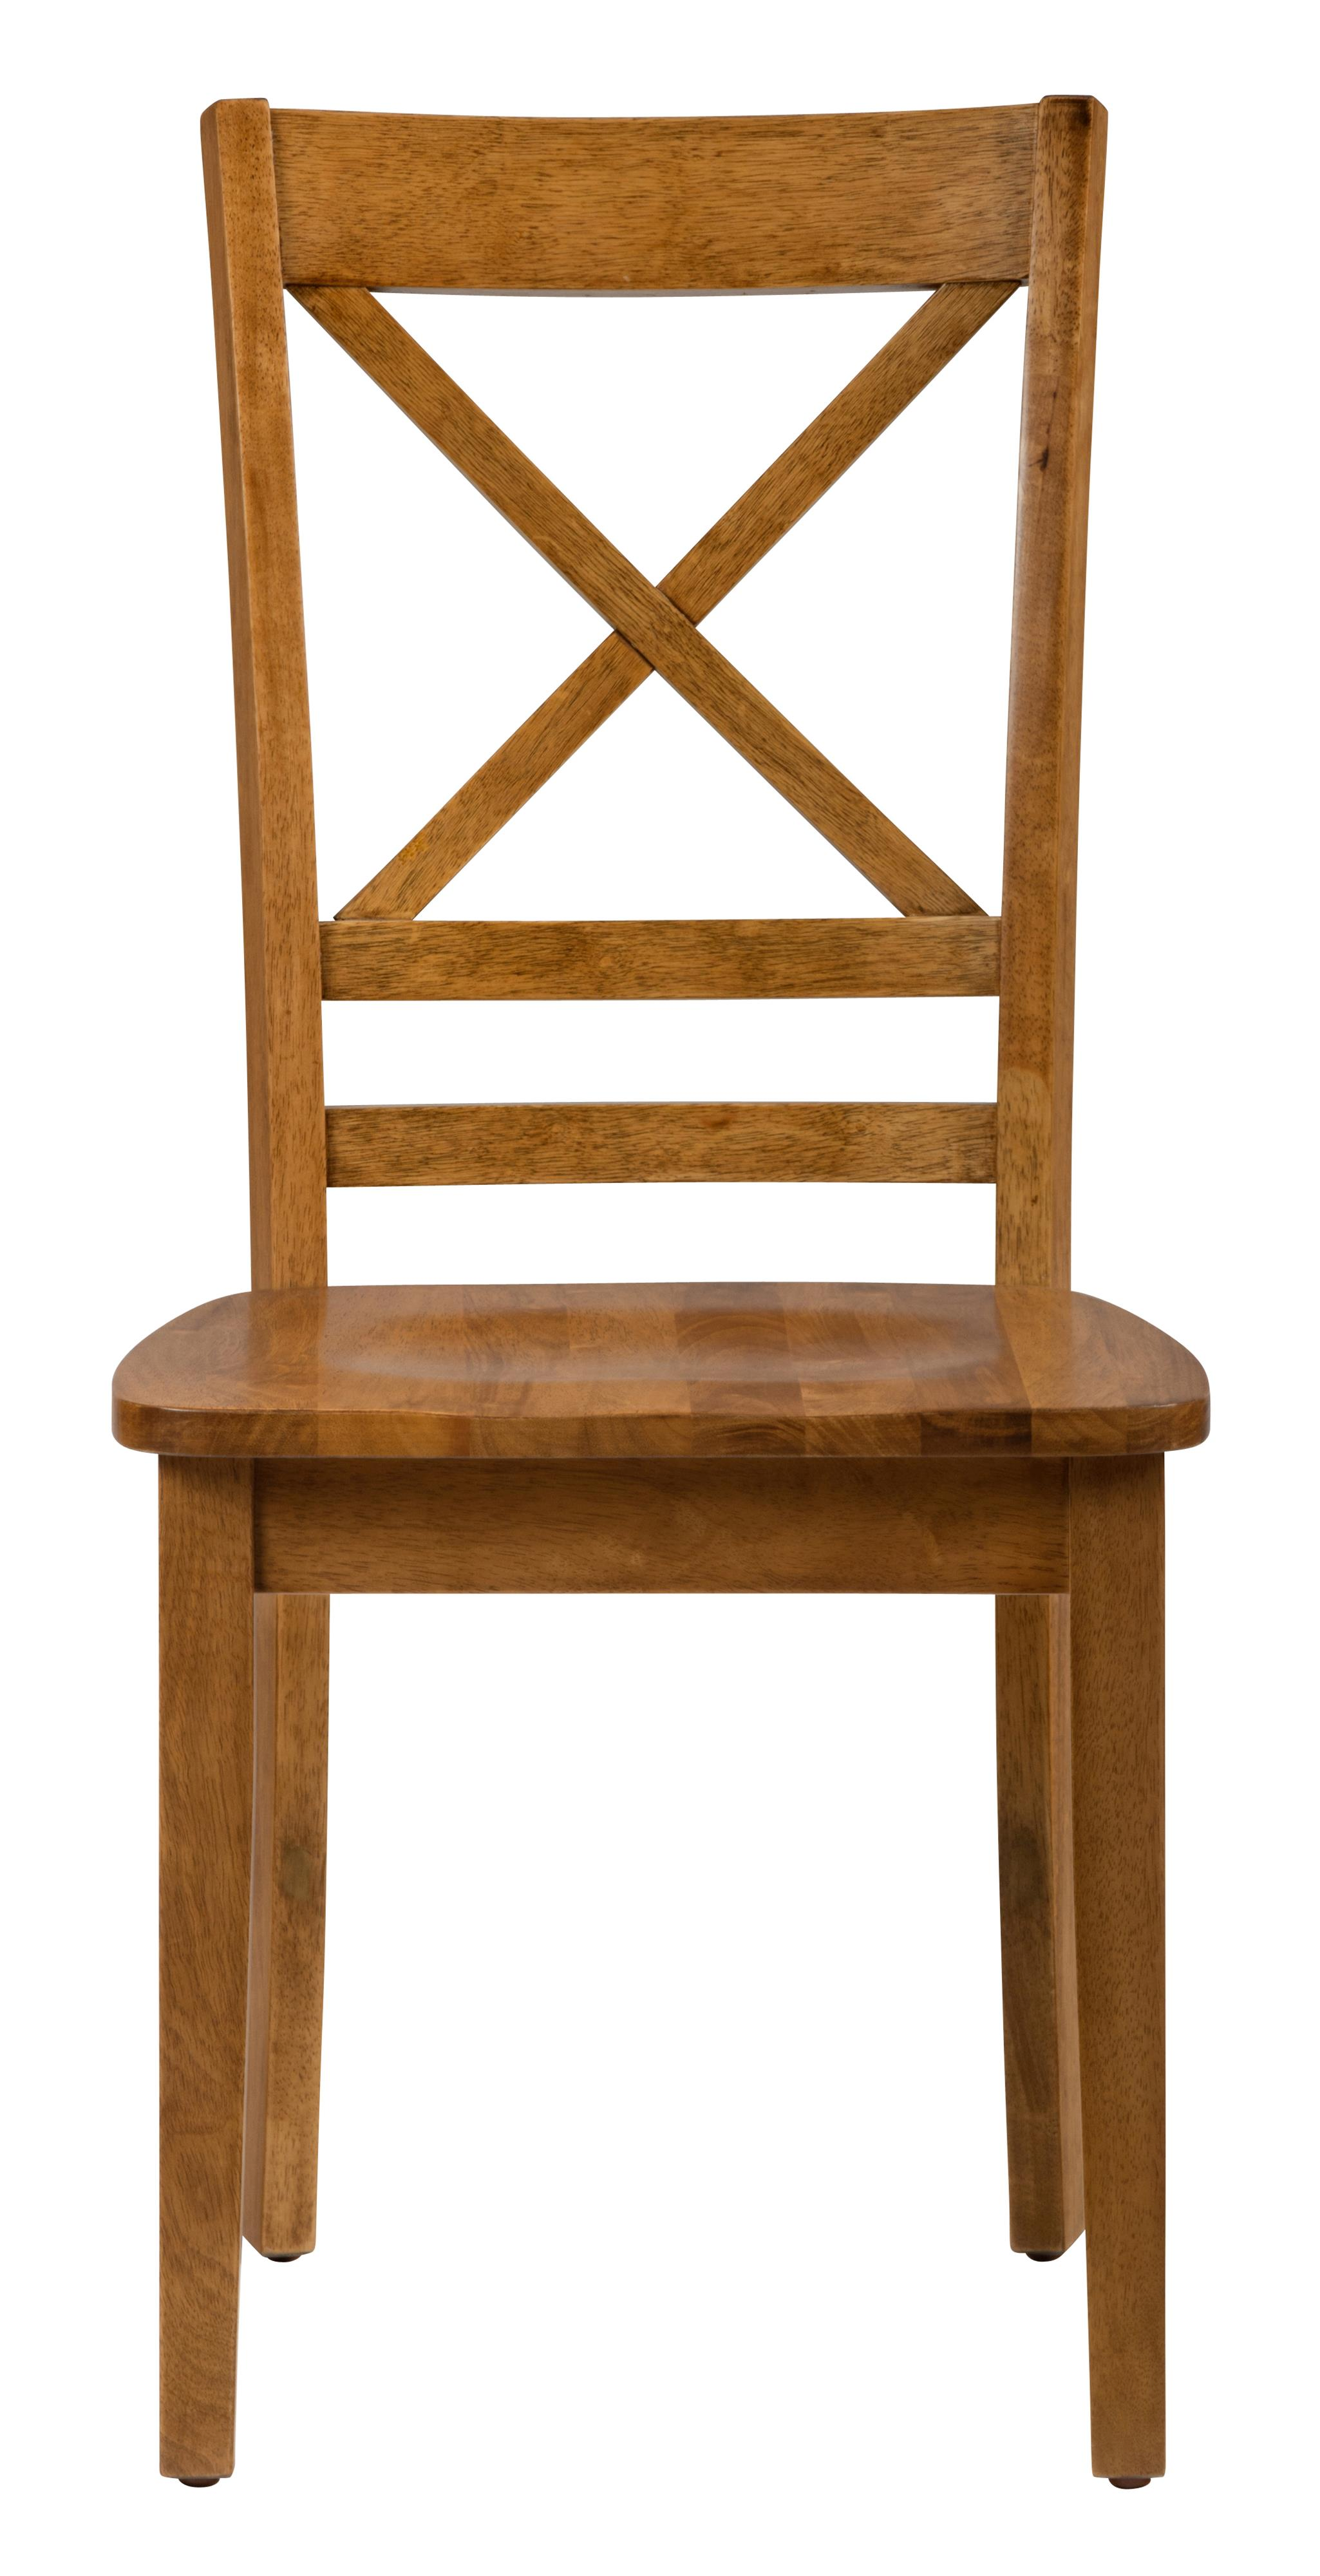 "Jofran Simplicity ""X"" Back Side Chair - Item Number: 352-806KD"